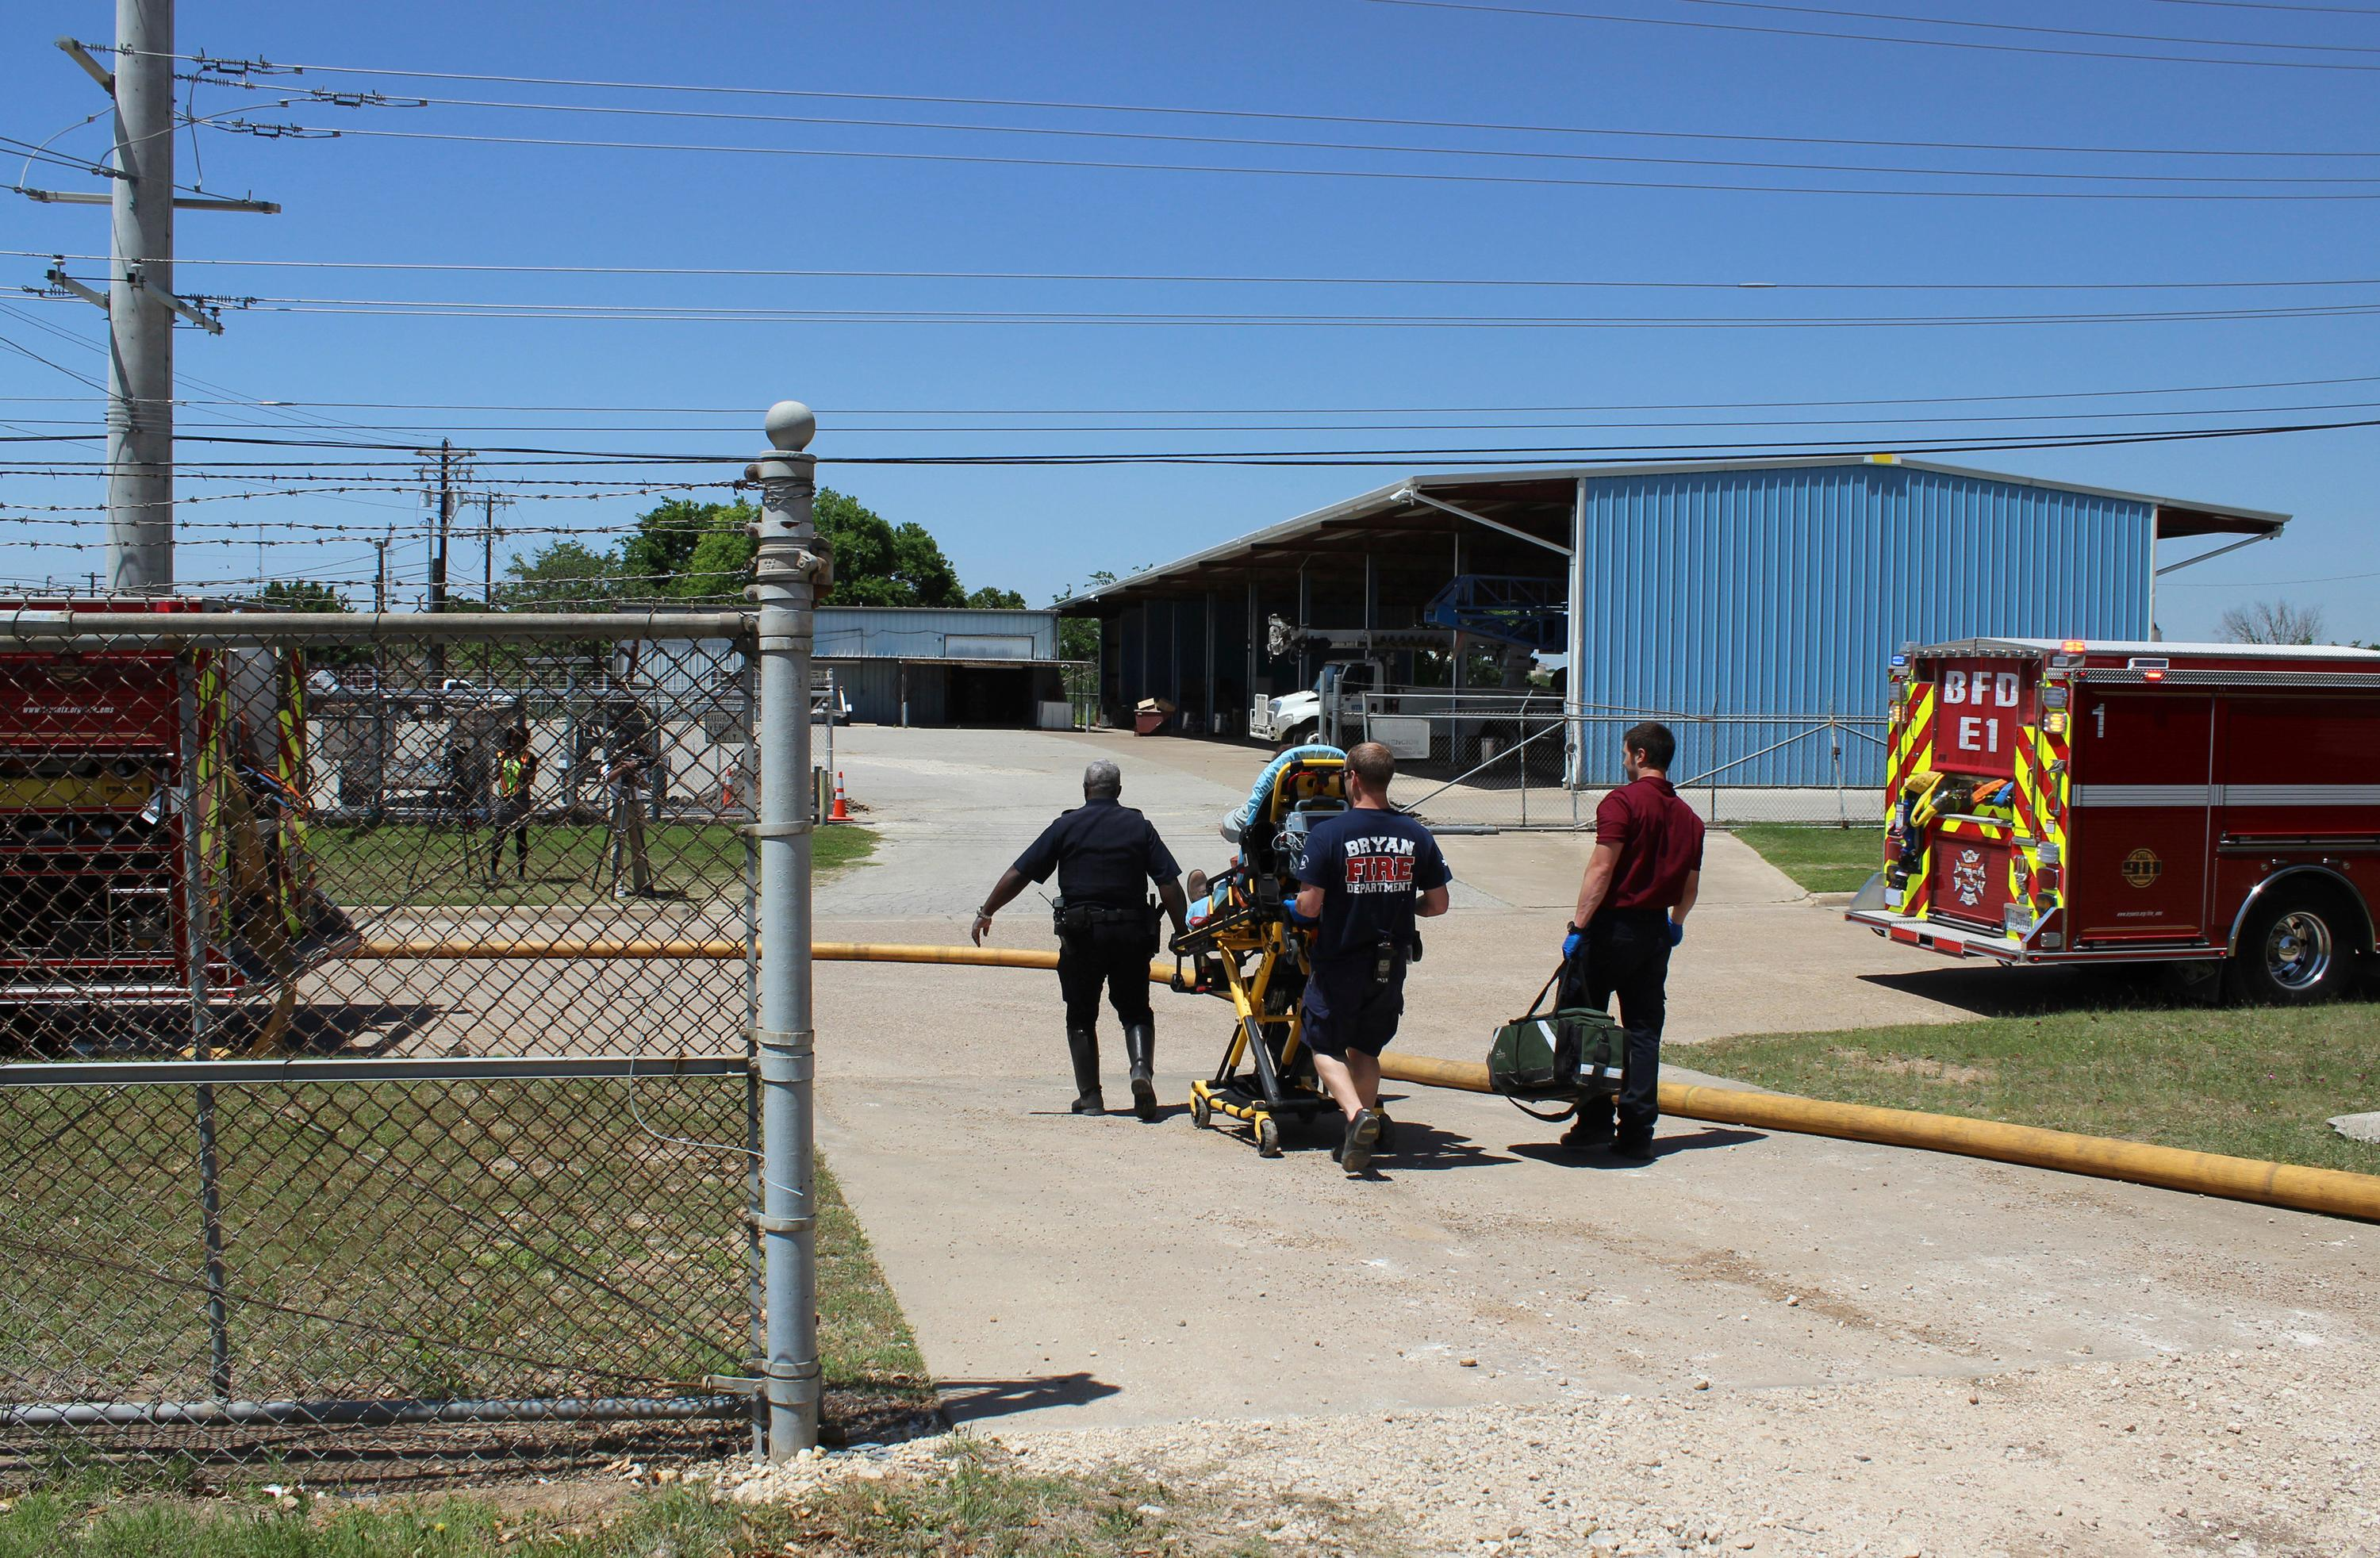 In this photo provide by the Bryan, Texas Fire Department, taken April 29, 2014, Bryan Texas firefighters transport injured worker in a stretcher to the ambulance. An explosion at the Bryan Texas Utilities Power Plant left a 60-year-old employee dead and two injured. Earle Robinson, 60, and other employees were doing maintenance work at Bryan Texas Utilities Power Plant, about 100 miles north of Houston, when there was a loud explosion. Workers called 911 and pleaded for help. Older people are dying on the job at a higher rate than workers overall, even as the rate of workplace fatalities decreases, according to an Associated Press analysis of federal statistics. (Bryan, Texas Fire Department via AP)